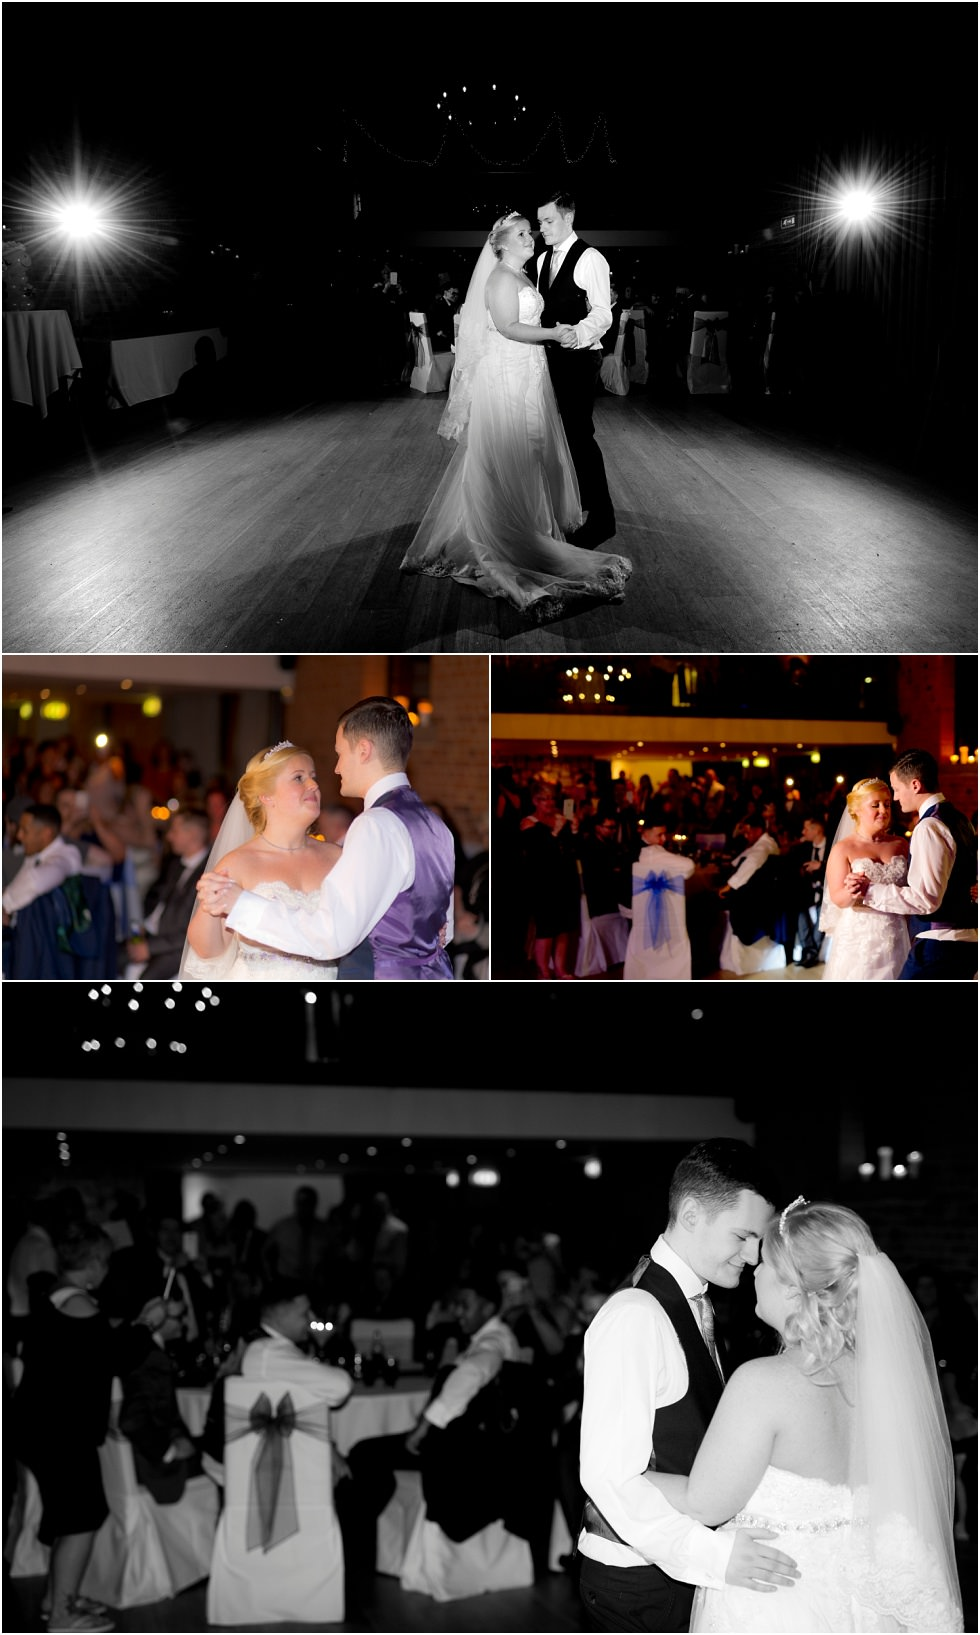 Wedding_at_The_Carriage_Hall_Plumtree_Nottingham_By_Nottingham_Wedding_Photographers_Matt_Selby_Photography_26